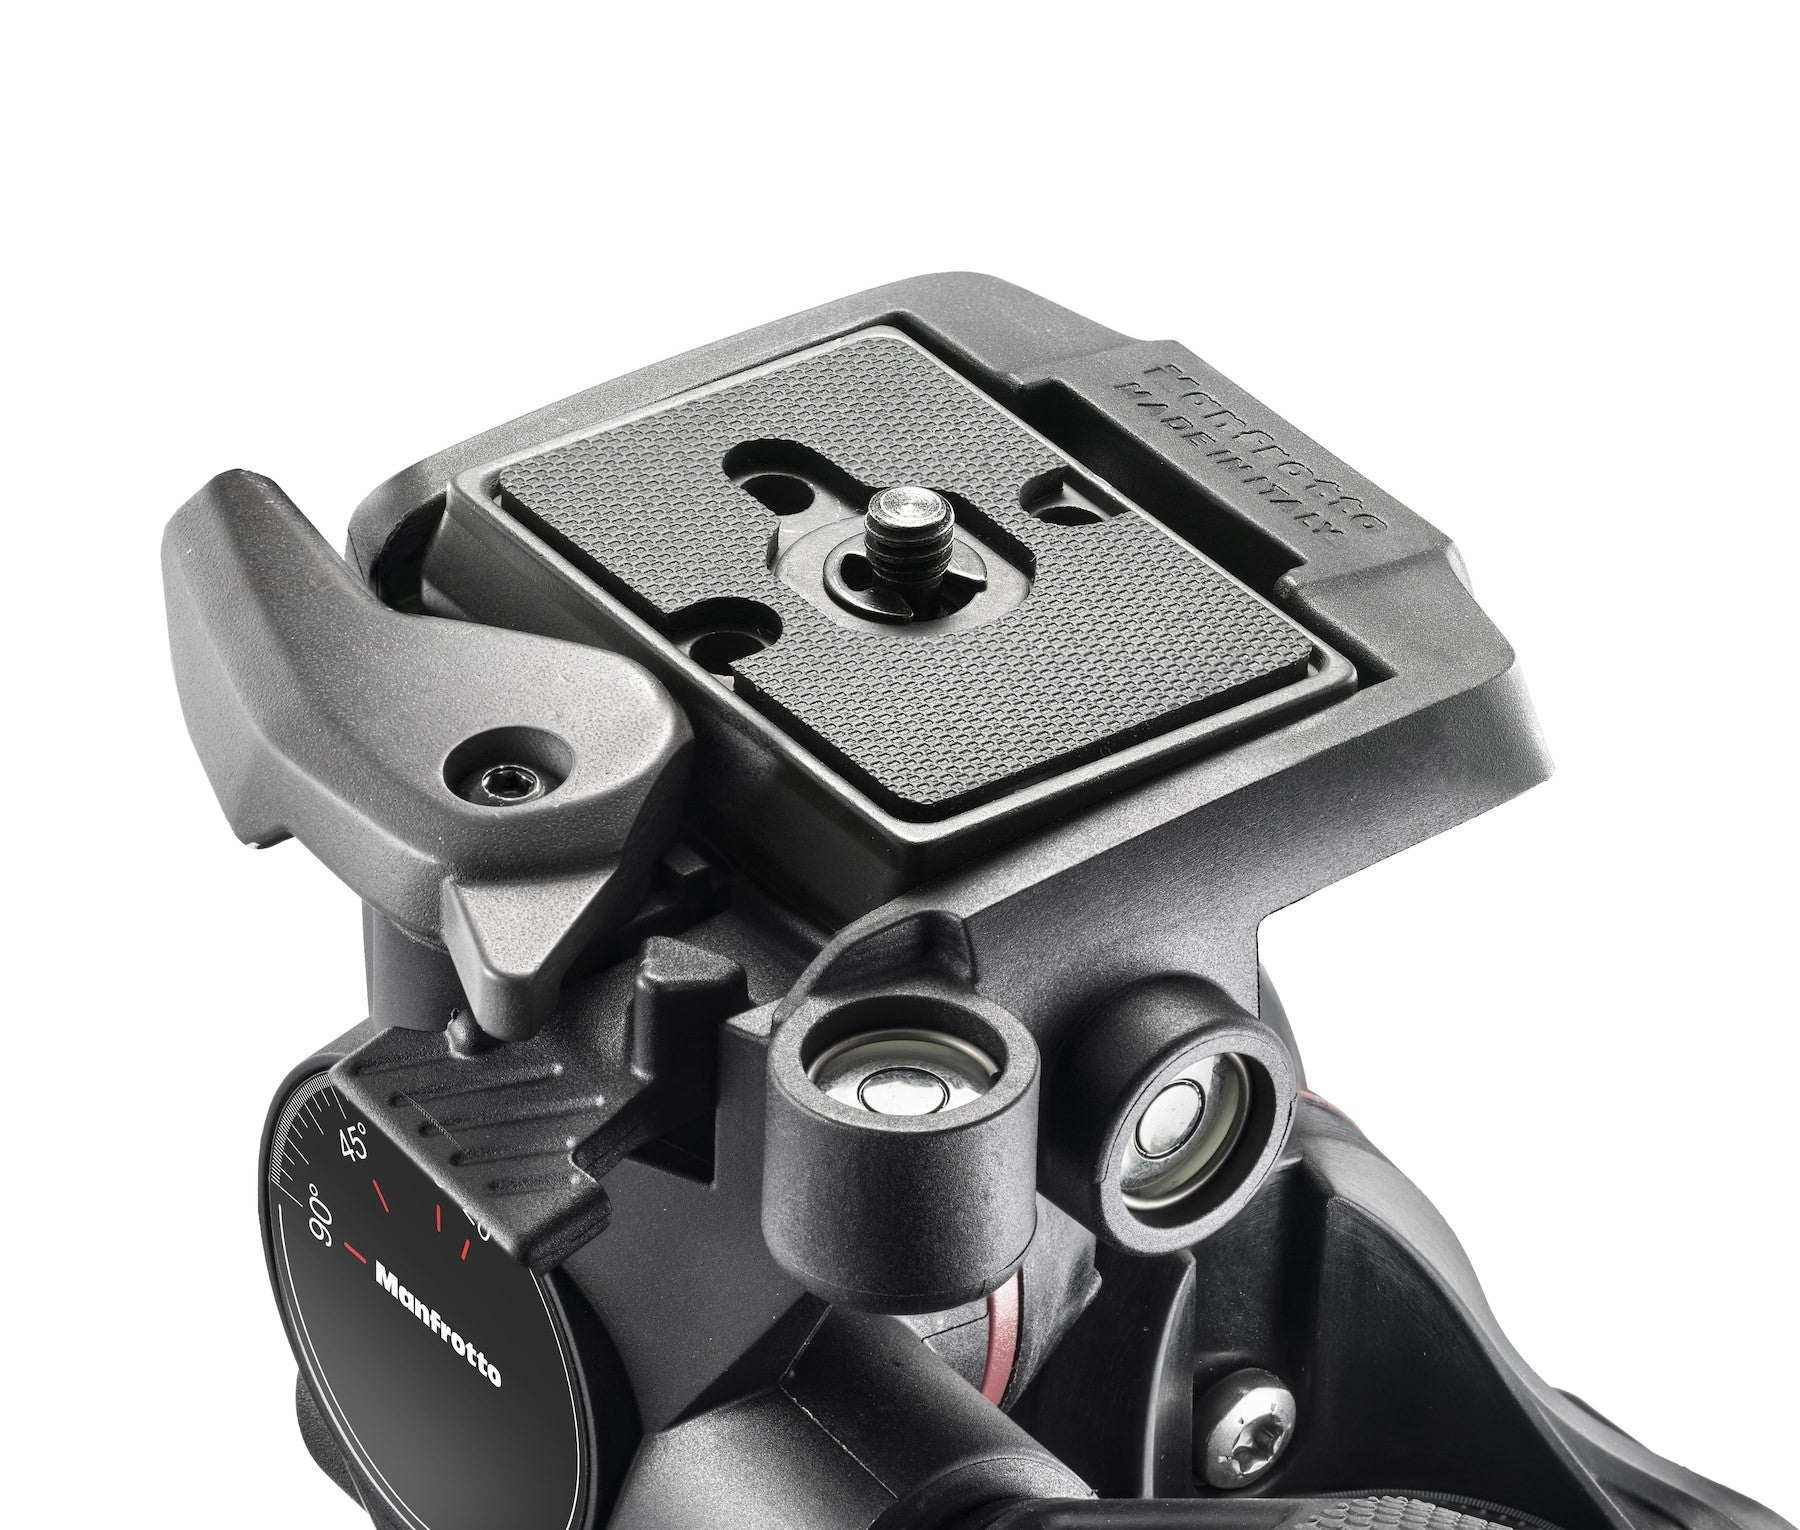 Manfrotto XPRO 3-Way Geared Head w/Q2 Quick Release